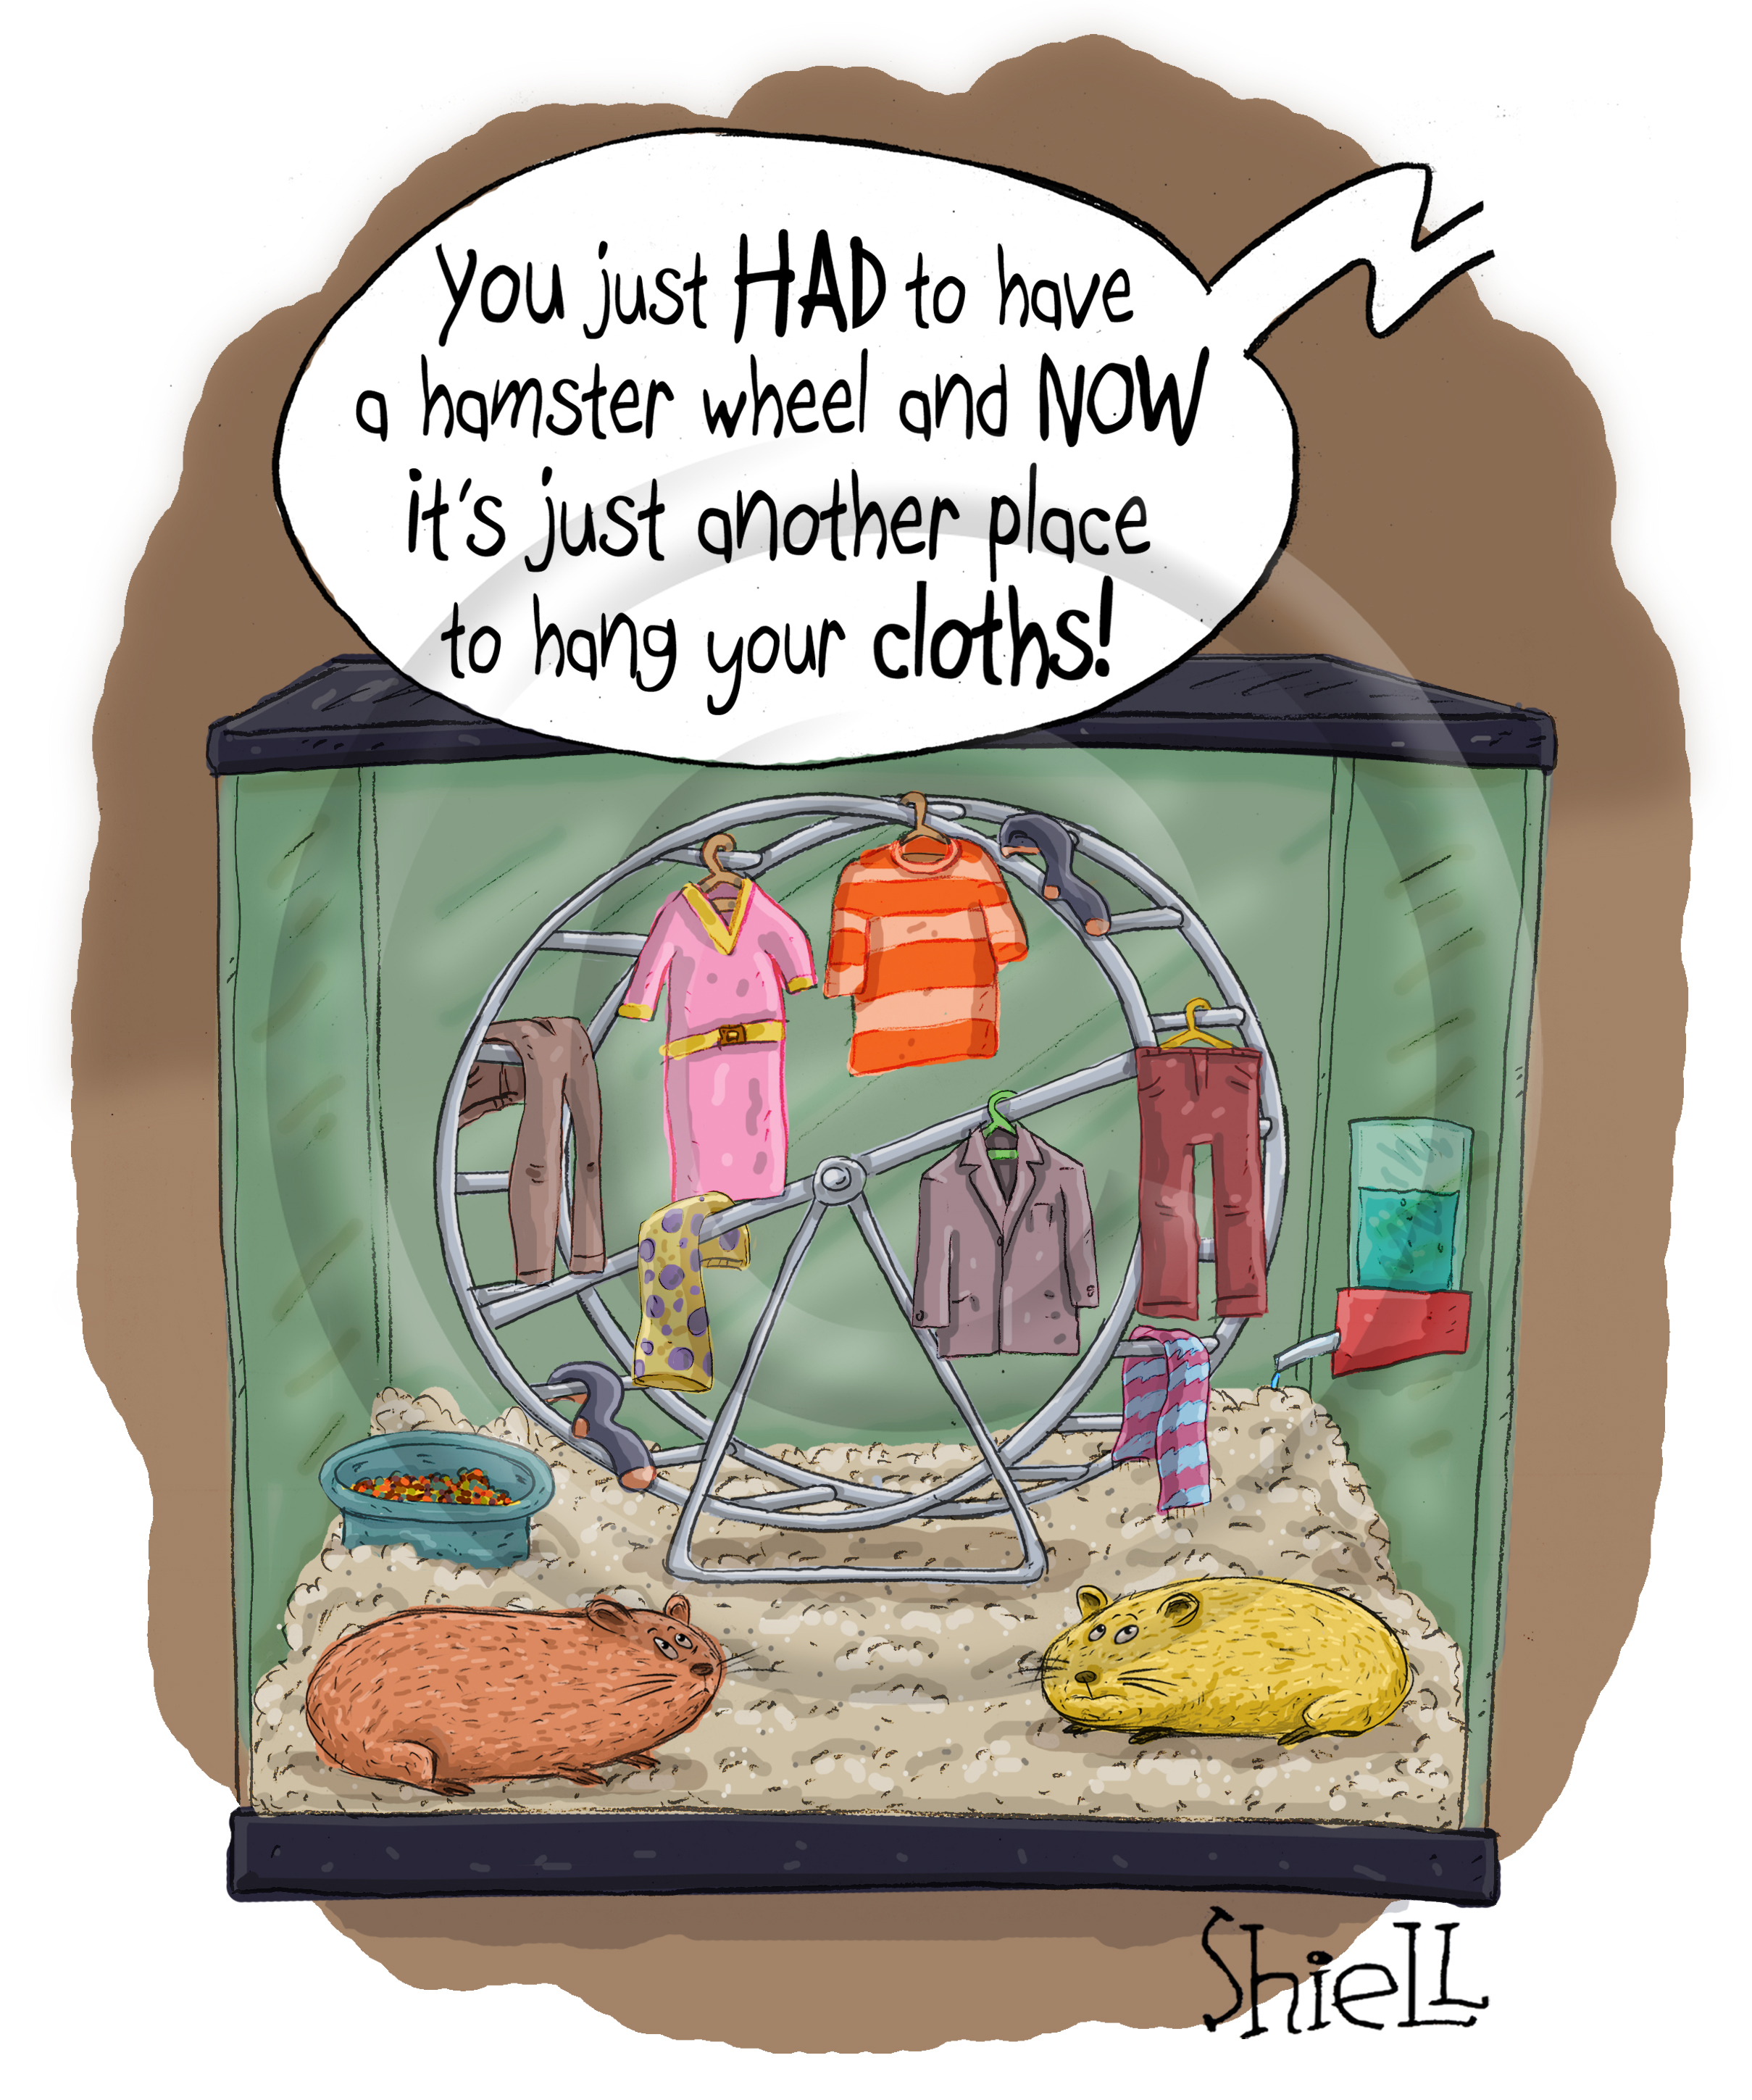 Hamster Wheel. Two chubby hamsters beg for a hamster wheel but the novelty quickly wears off and it becomes just another place to hang their clothes.